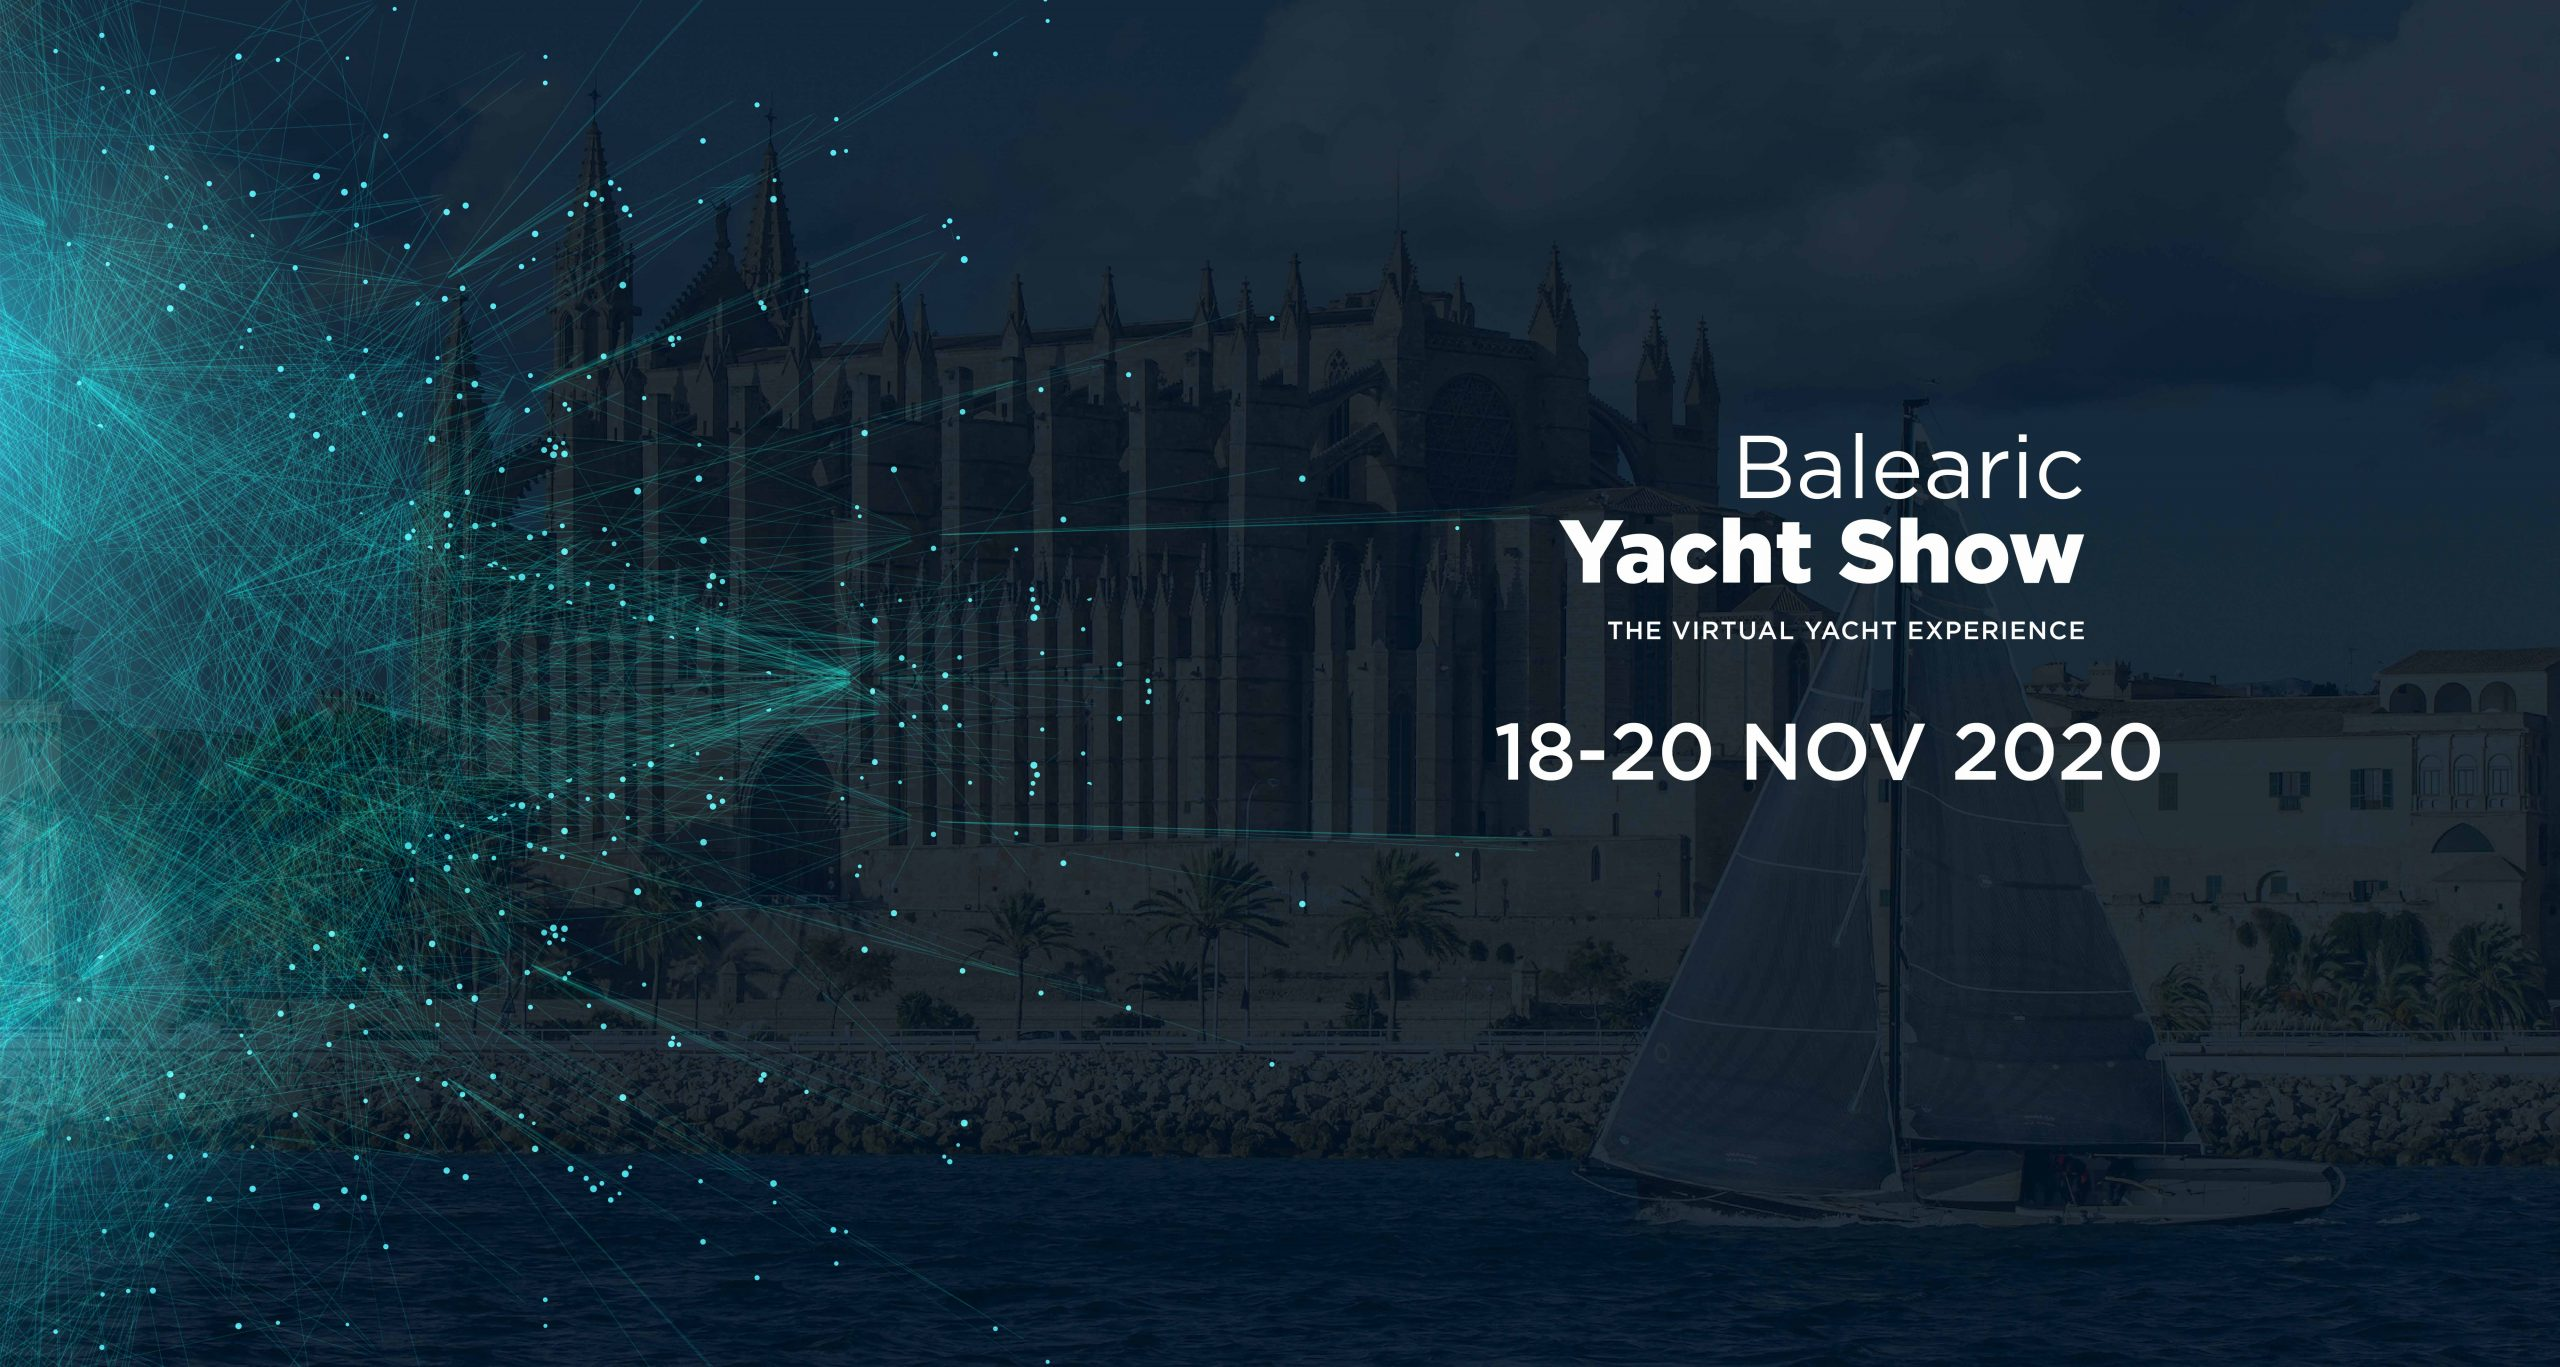 Lanzamiento del proyecto Balearic Yacht Show